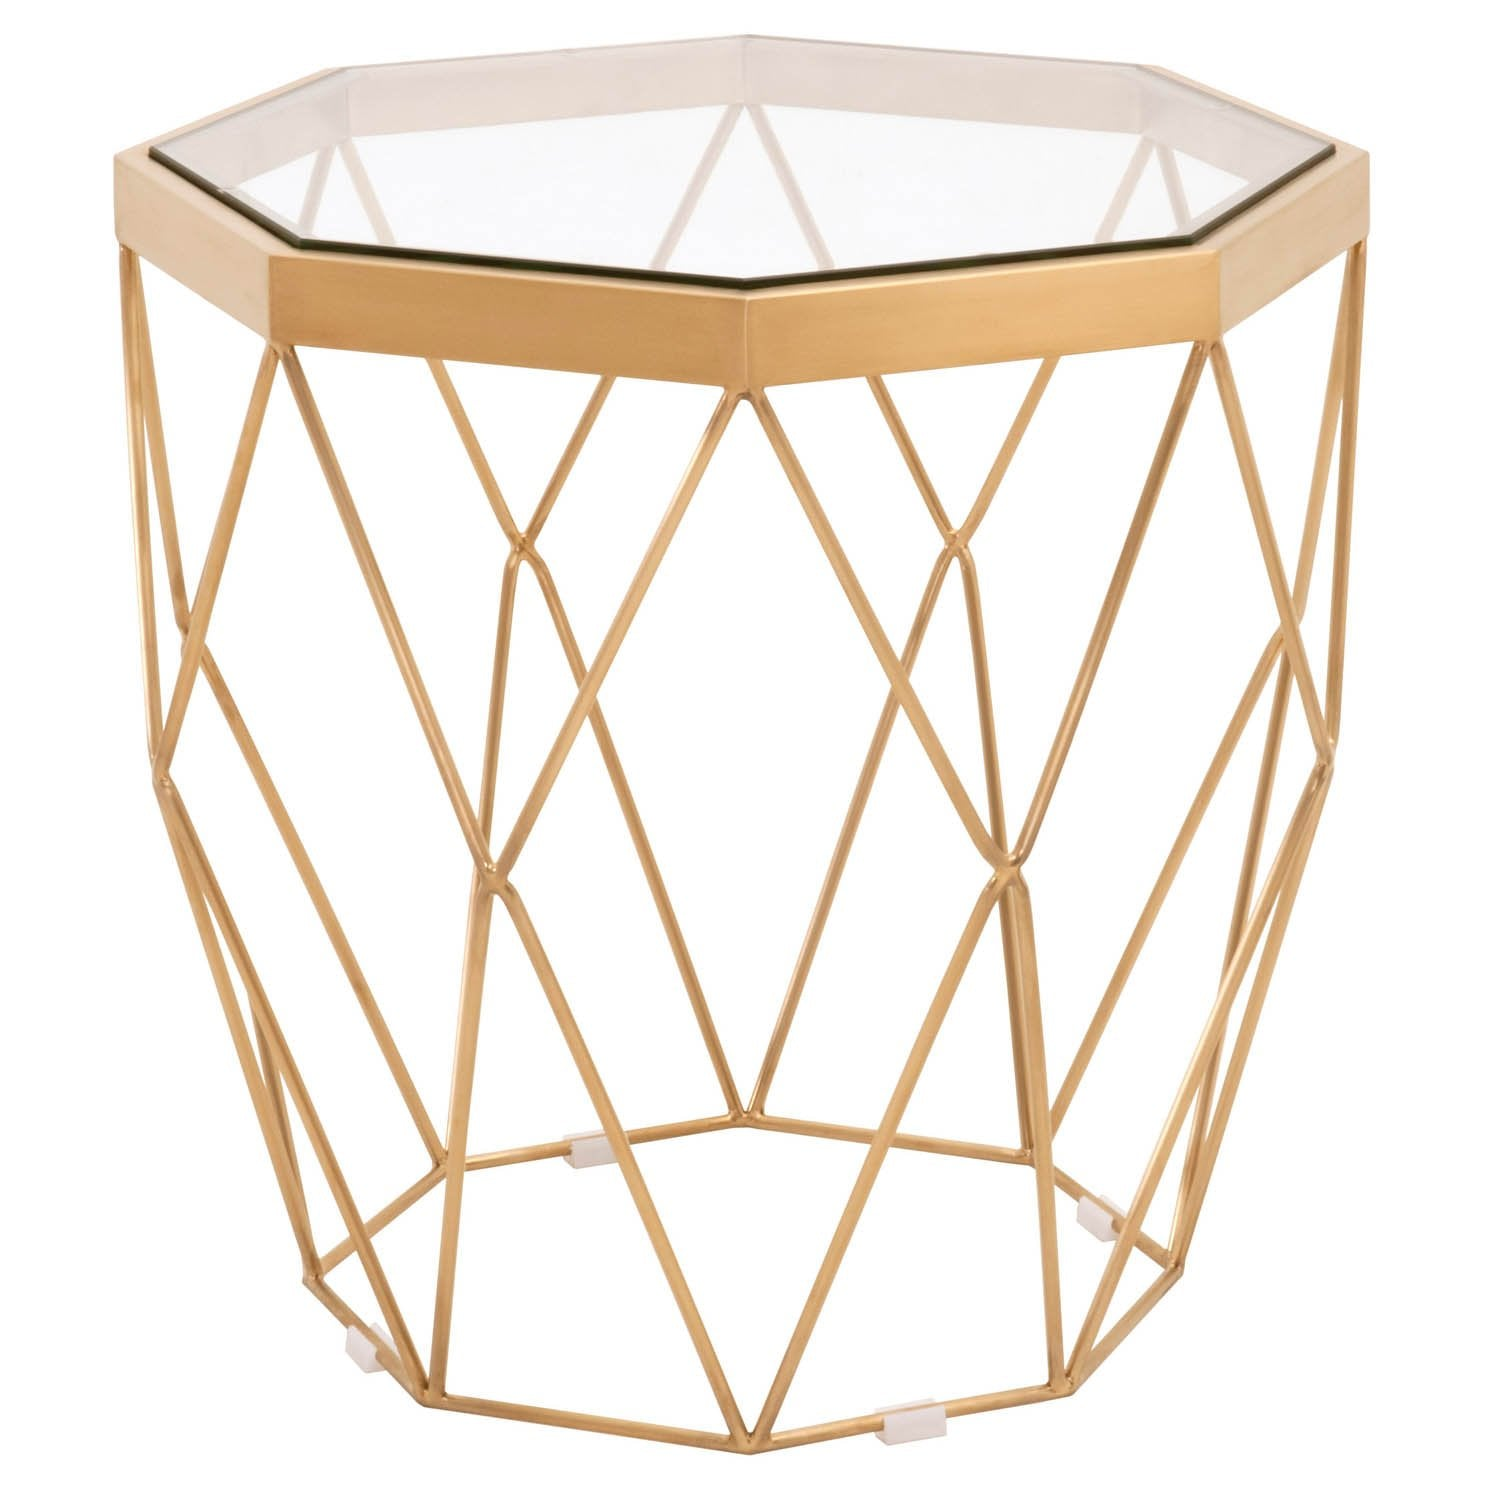 Origami End Table in Brushed Gold